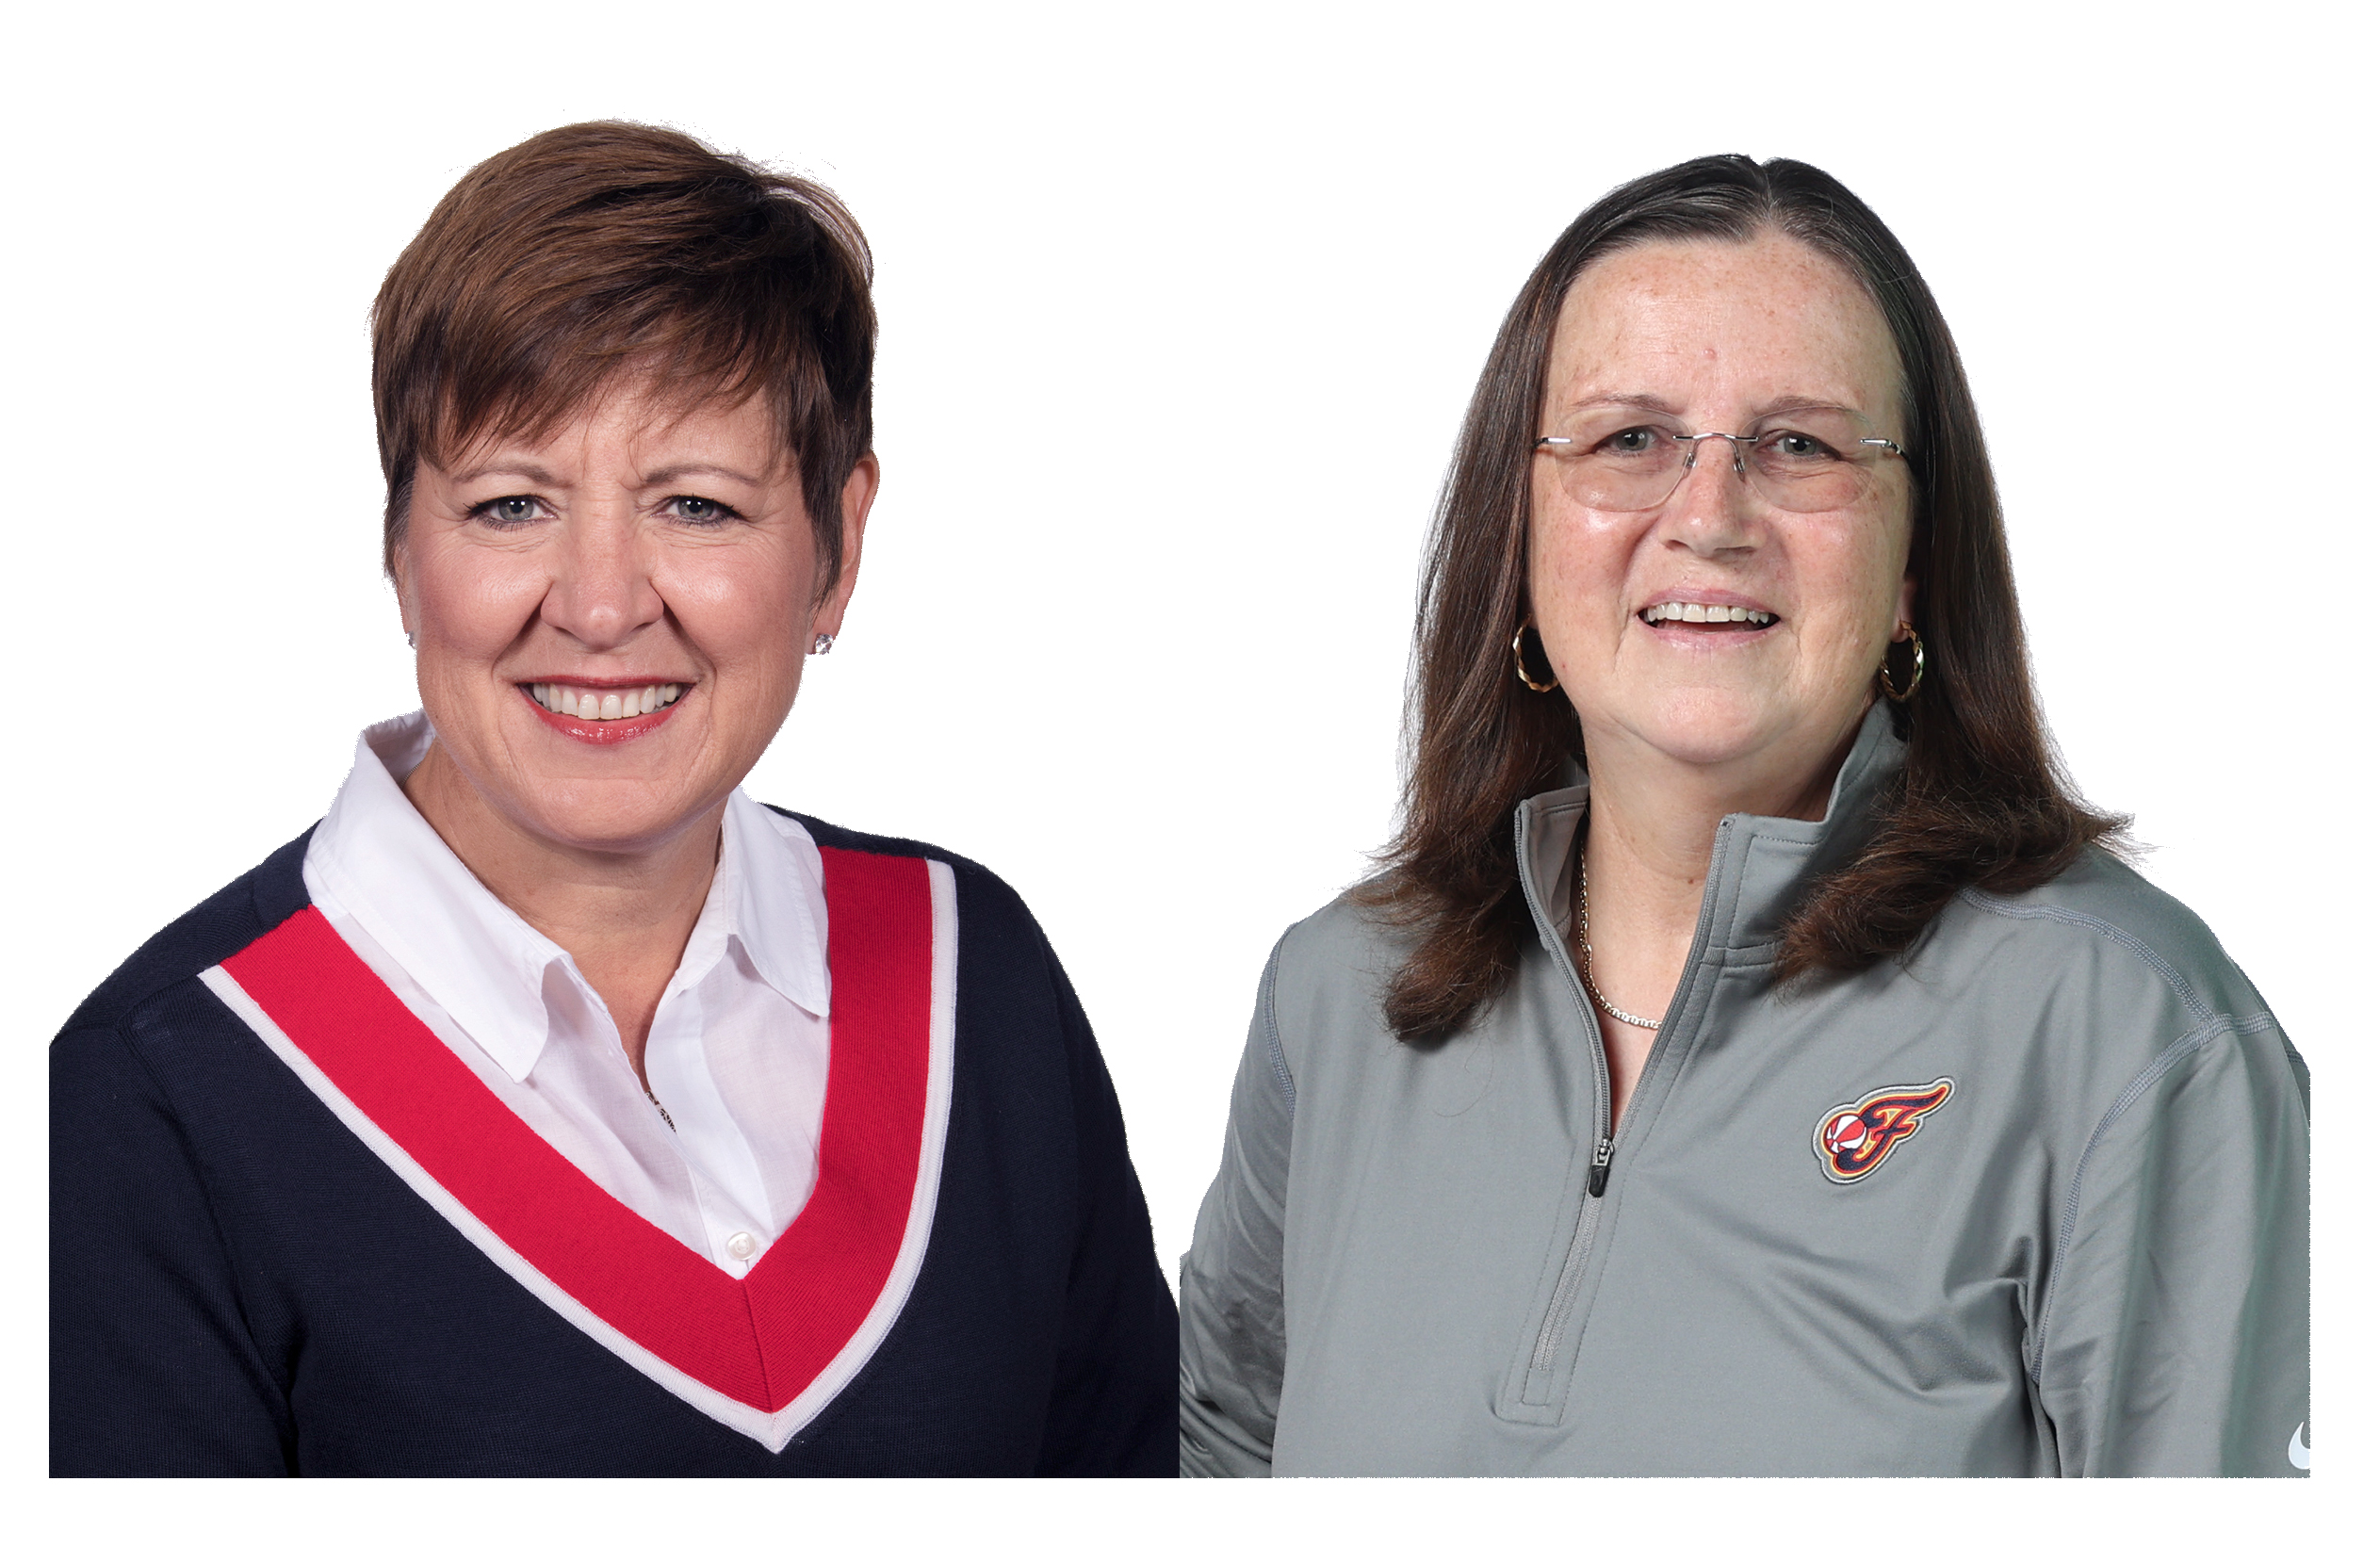 Indiana Fever | President and COO Dr. Allison Barber and Coach Marianne Stanley